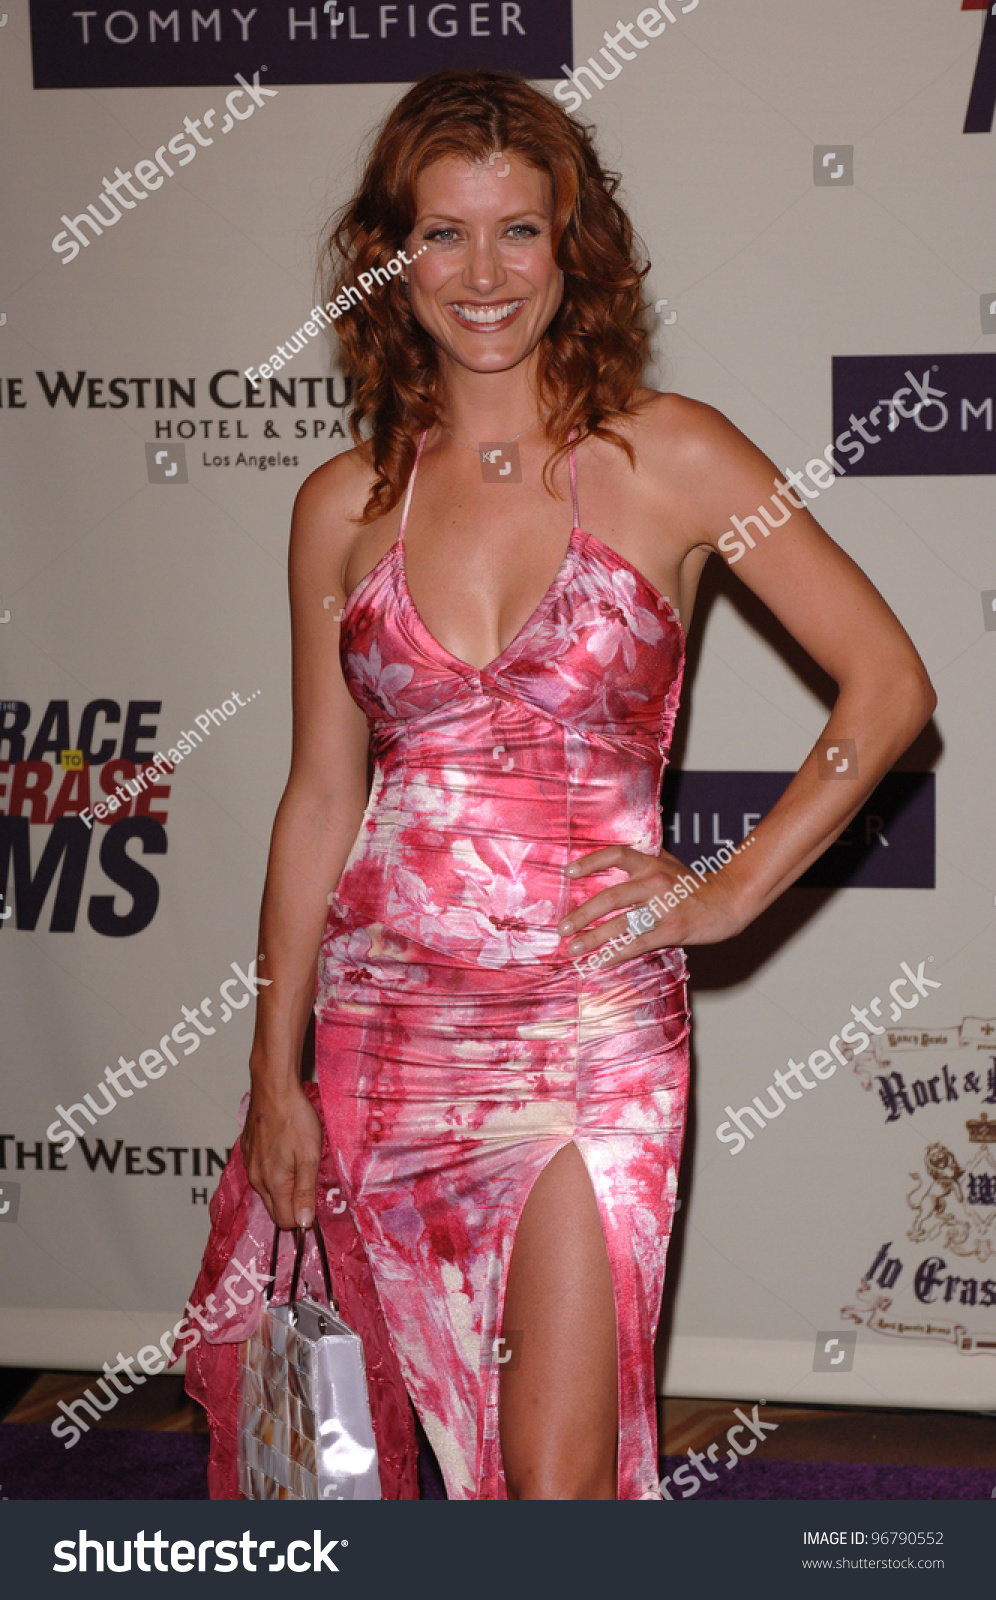 Kate Walsh (actress) Kate Walsh (actress) new pictures